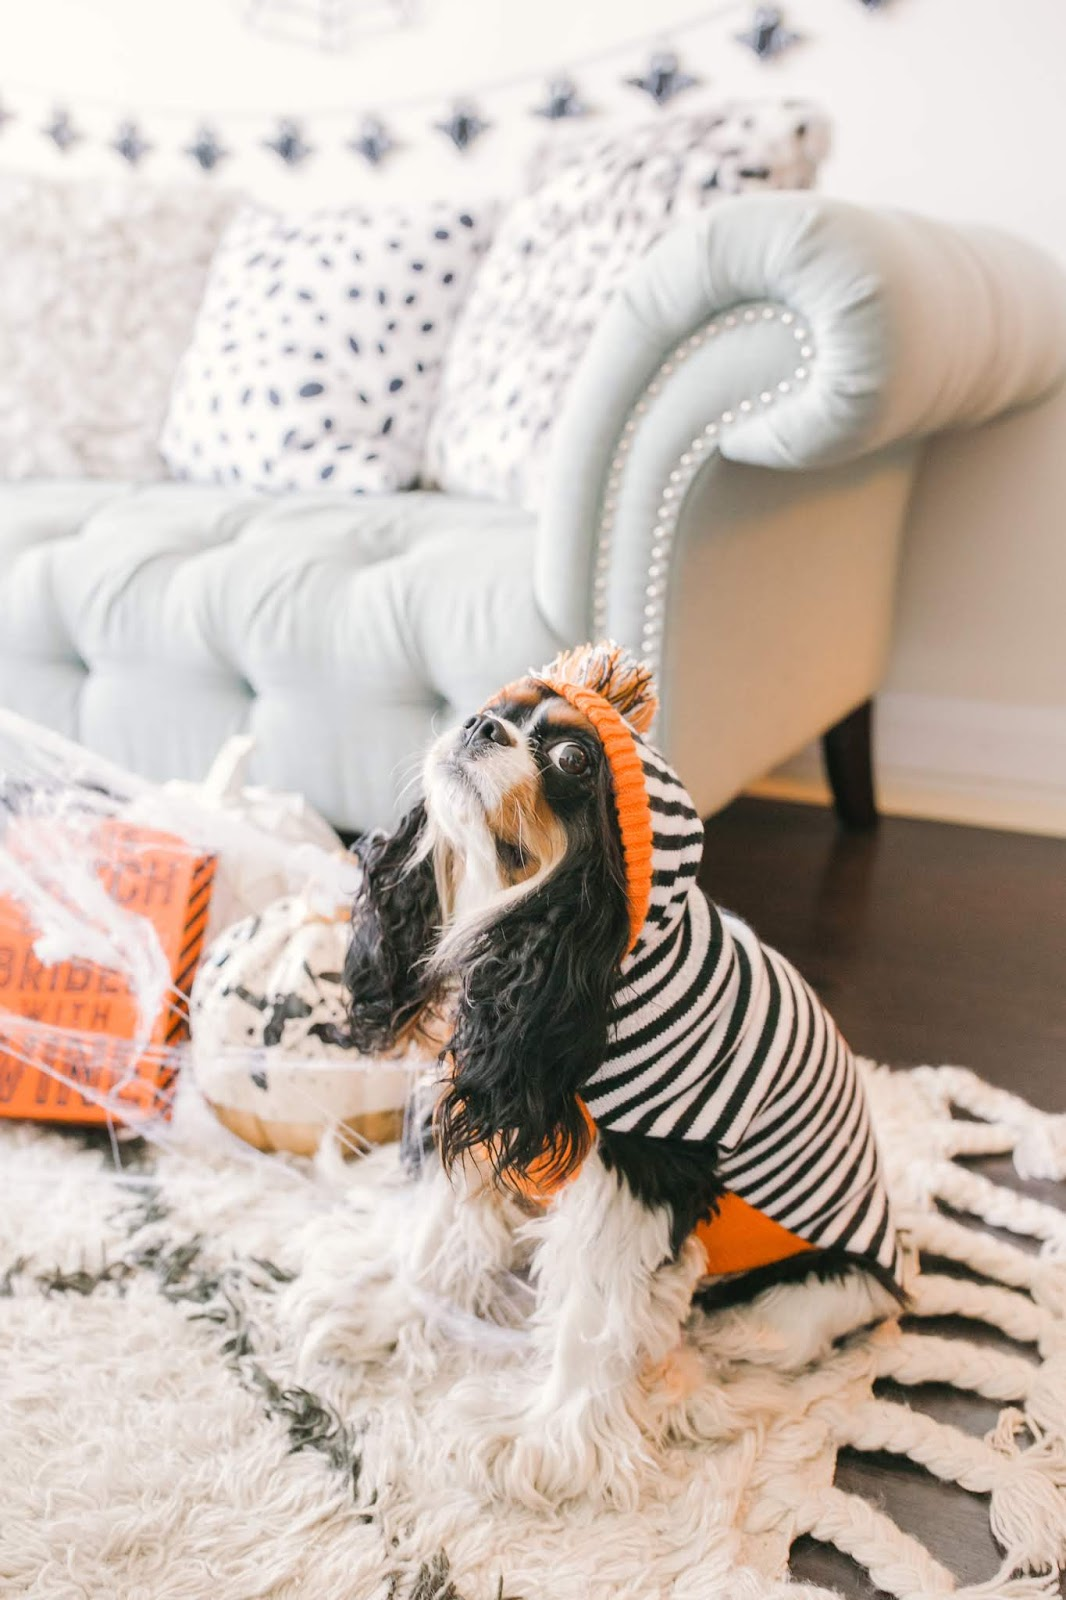 Bijuleni - How to Decorate Your Living Room for Halloween - Cavalier King Charles Spanie puppy dressed up for Halloweenl